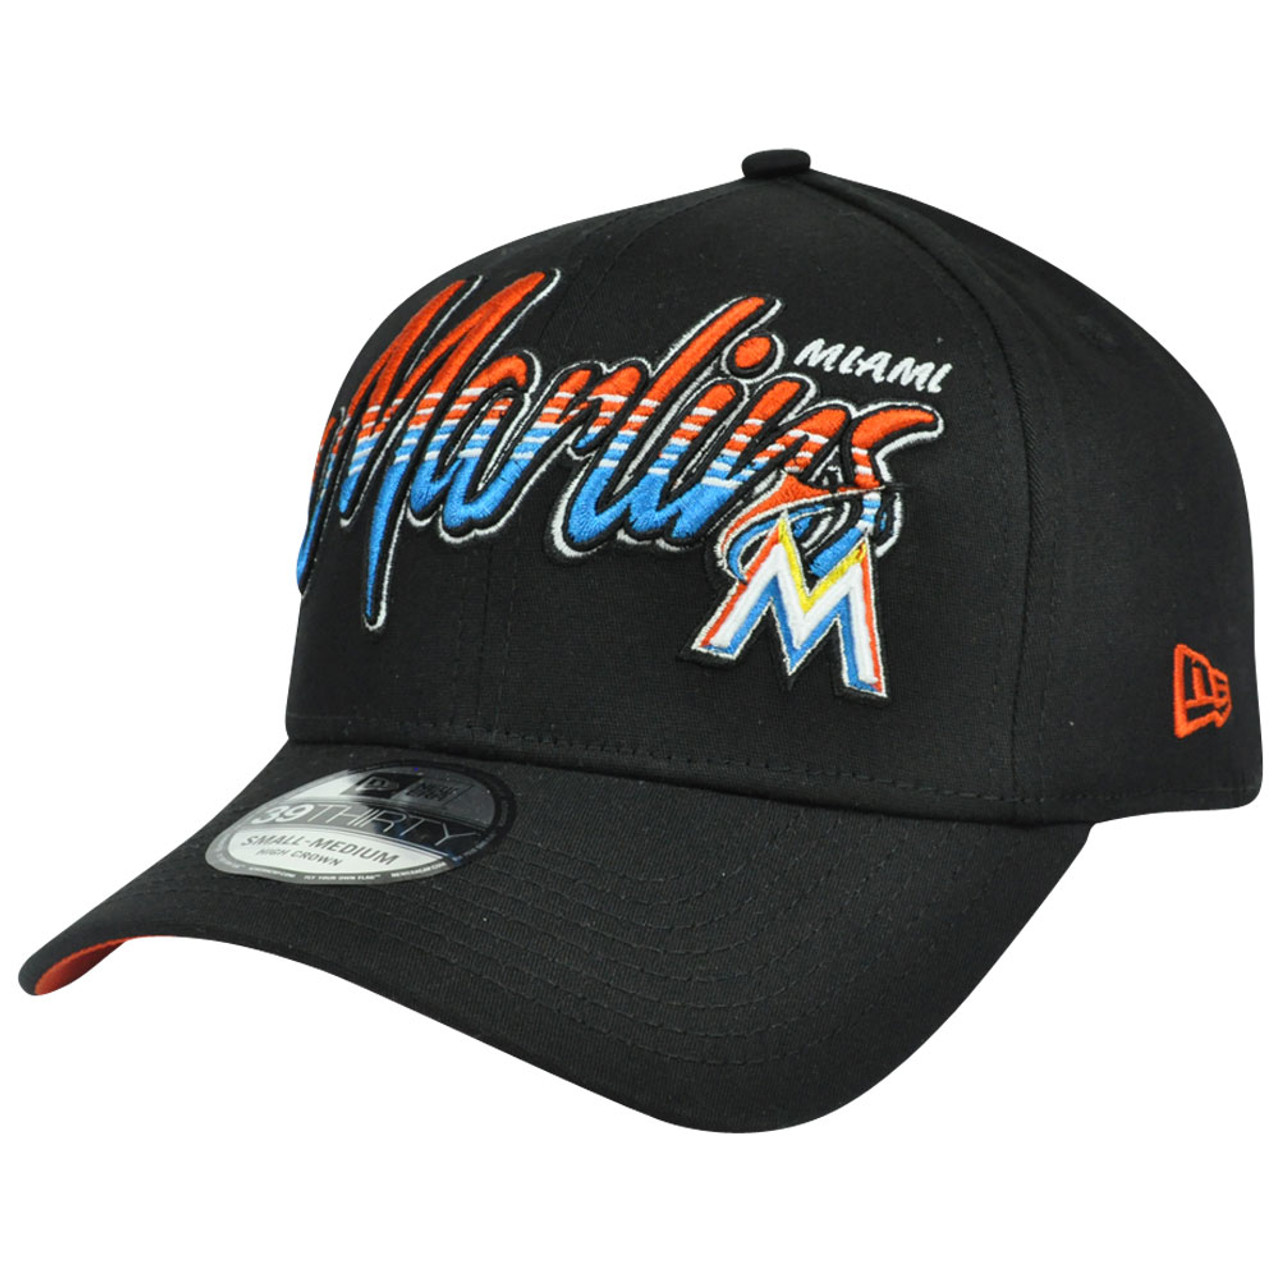 newest 3a71f 1d6eb 3930 MLB New Era 39Thirty M/L Miami Marlins Dub Tone Stretch Flex Fit Hat  Cap